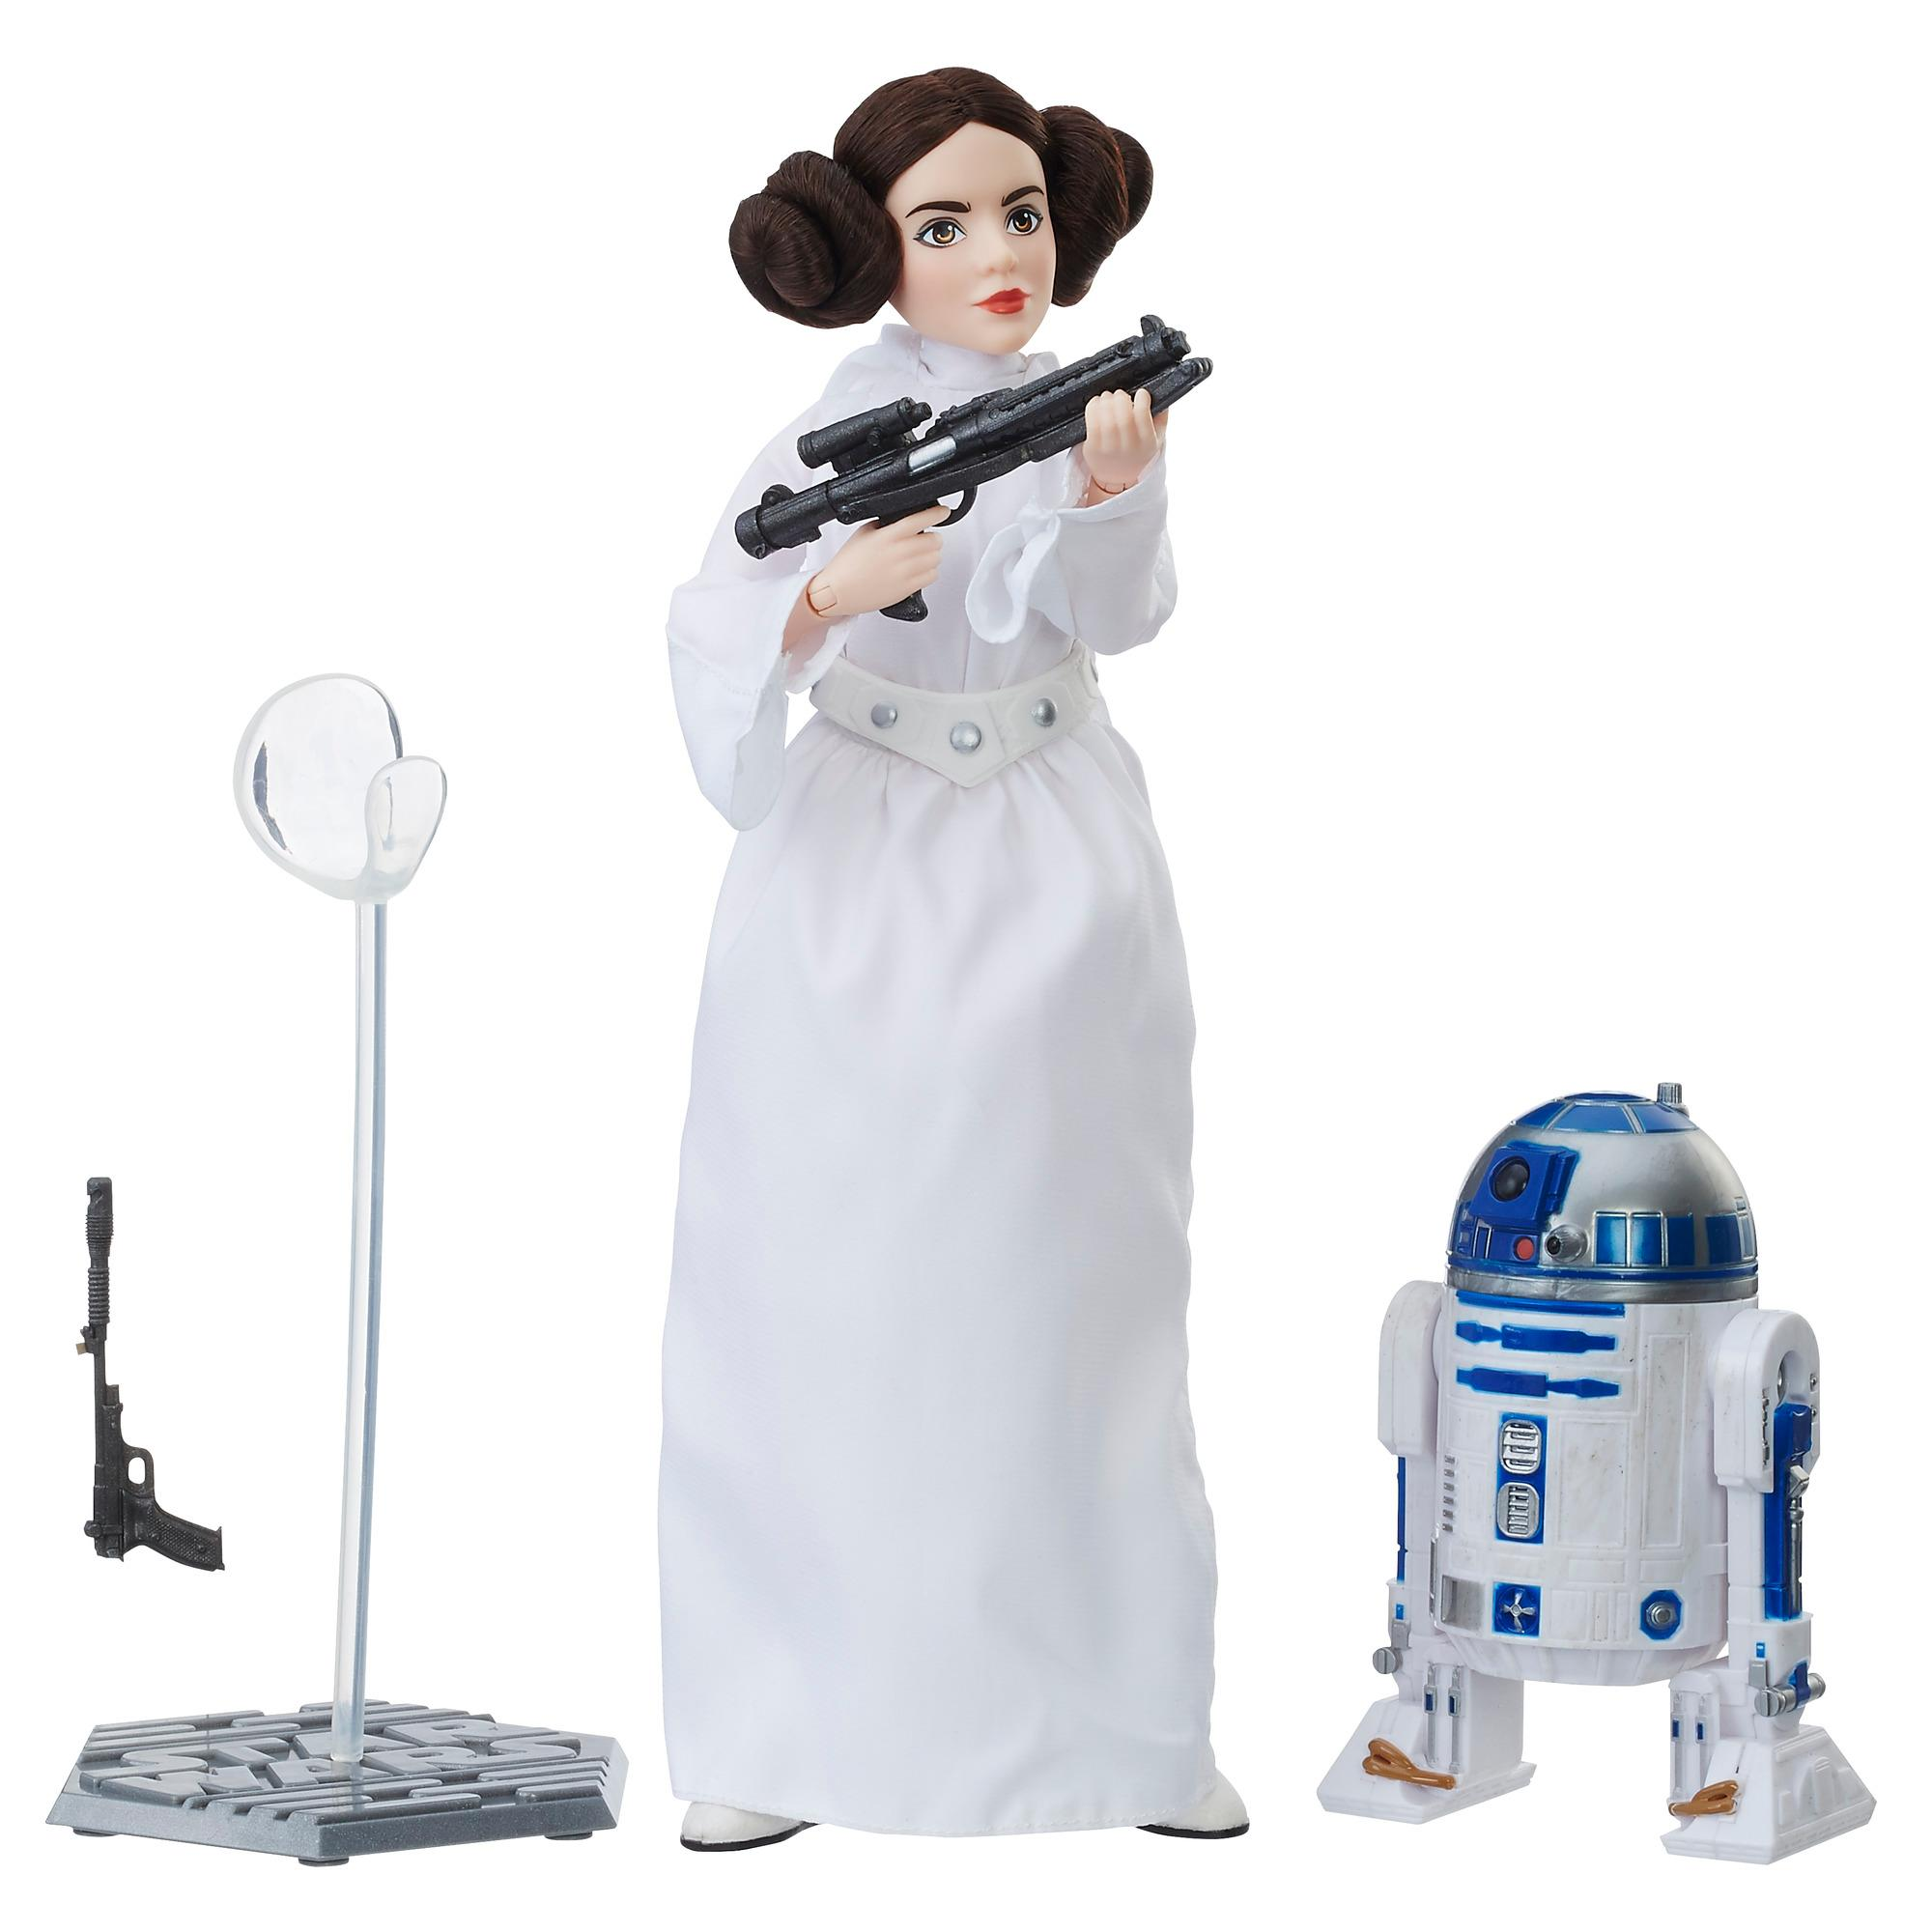 Star Wars Forces of Destiny Princess Leia Organa Platinum Edition Figure